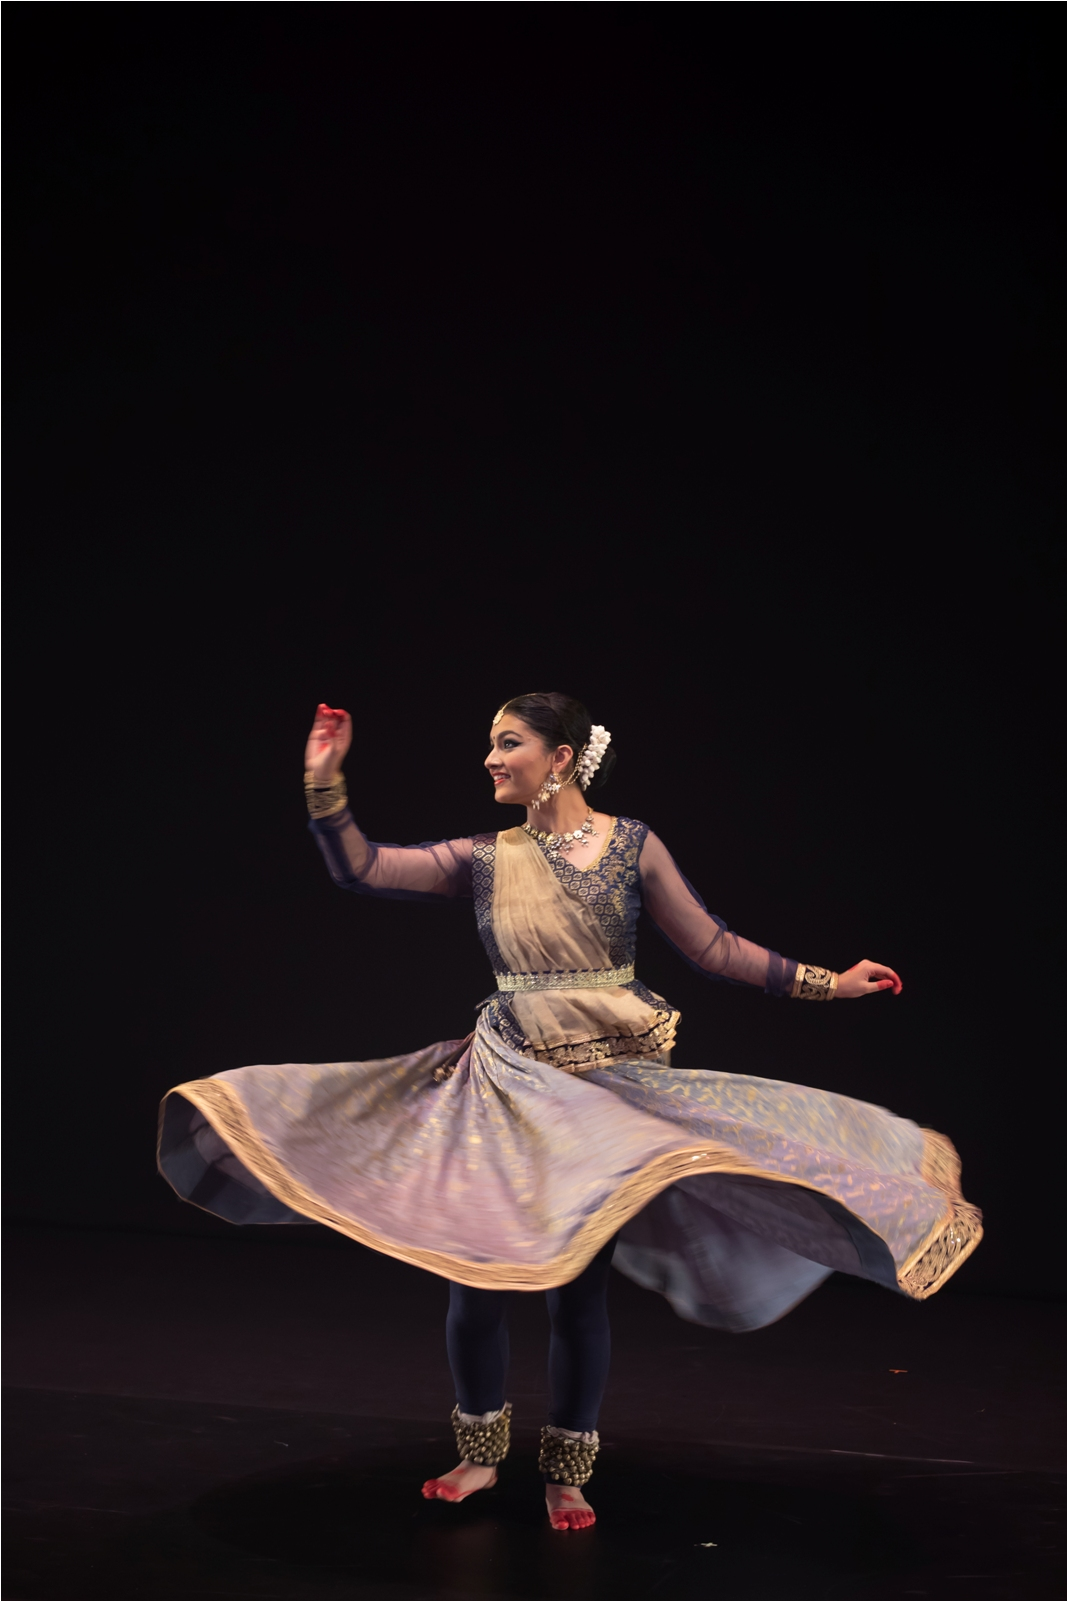 Aarya Kini's kathak journey began when she was seven years old. Photo courtesy: Esplanade